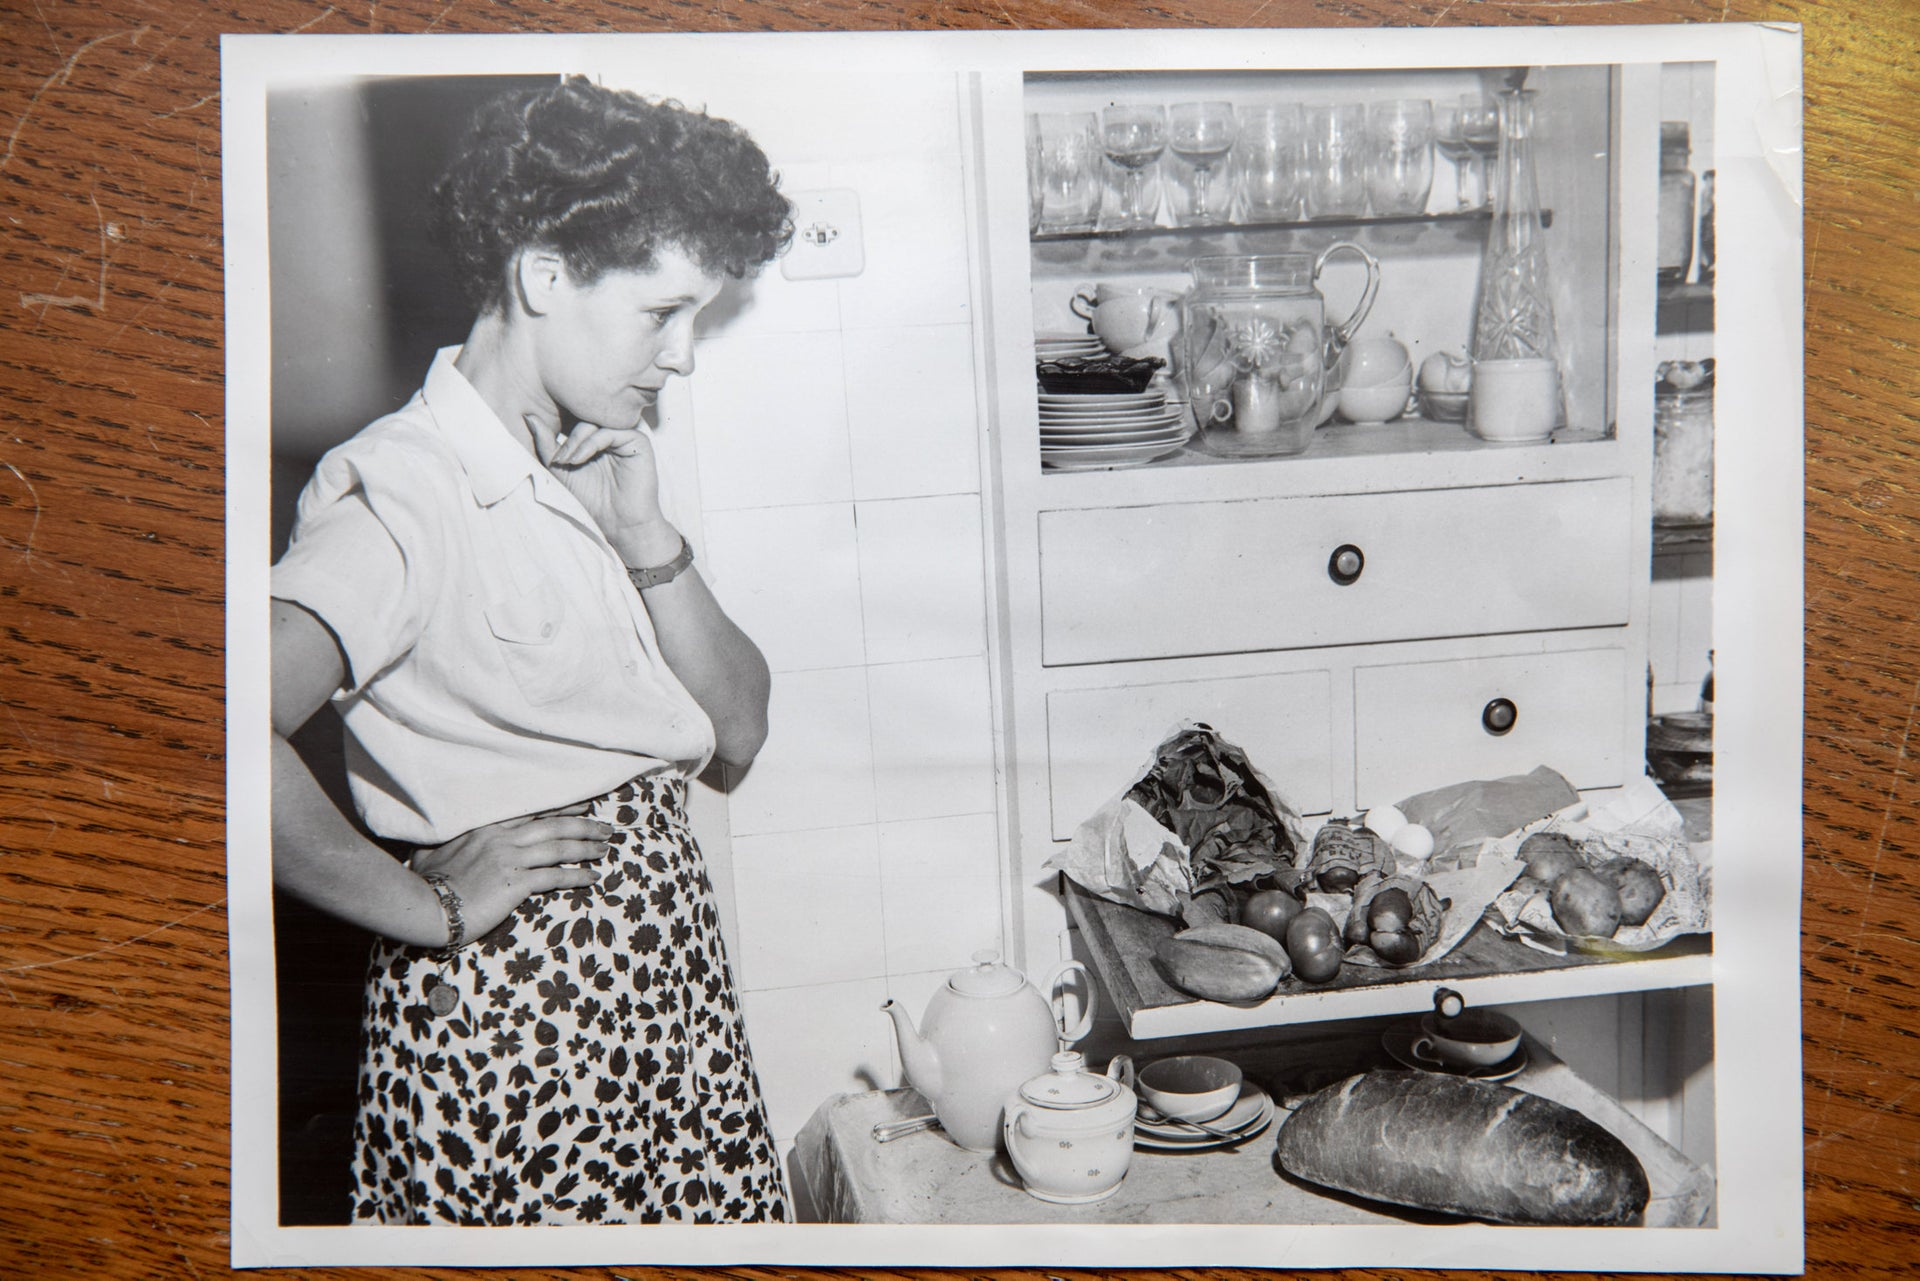 Mrs. Steiner in her kitchen in Tel Aviv during the years of austerity, December 6, 1949.